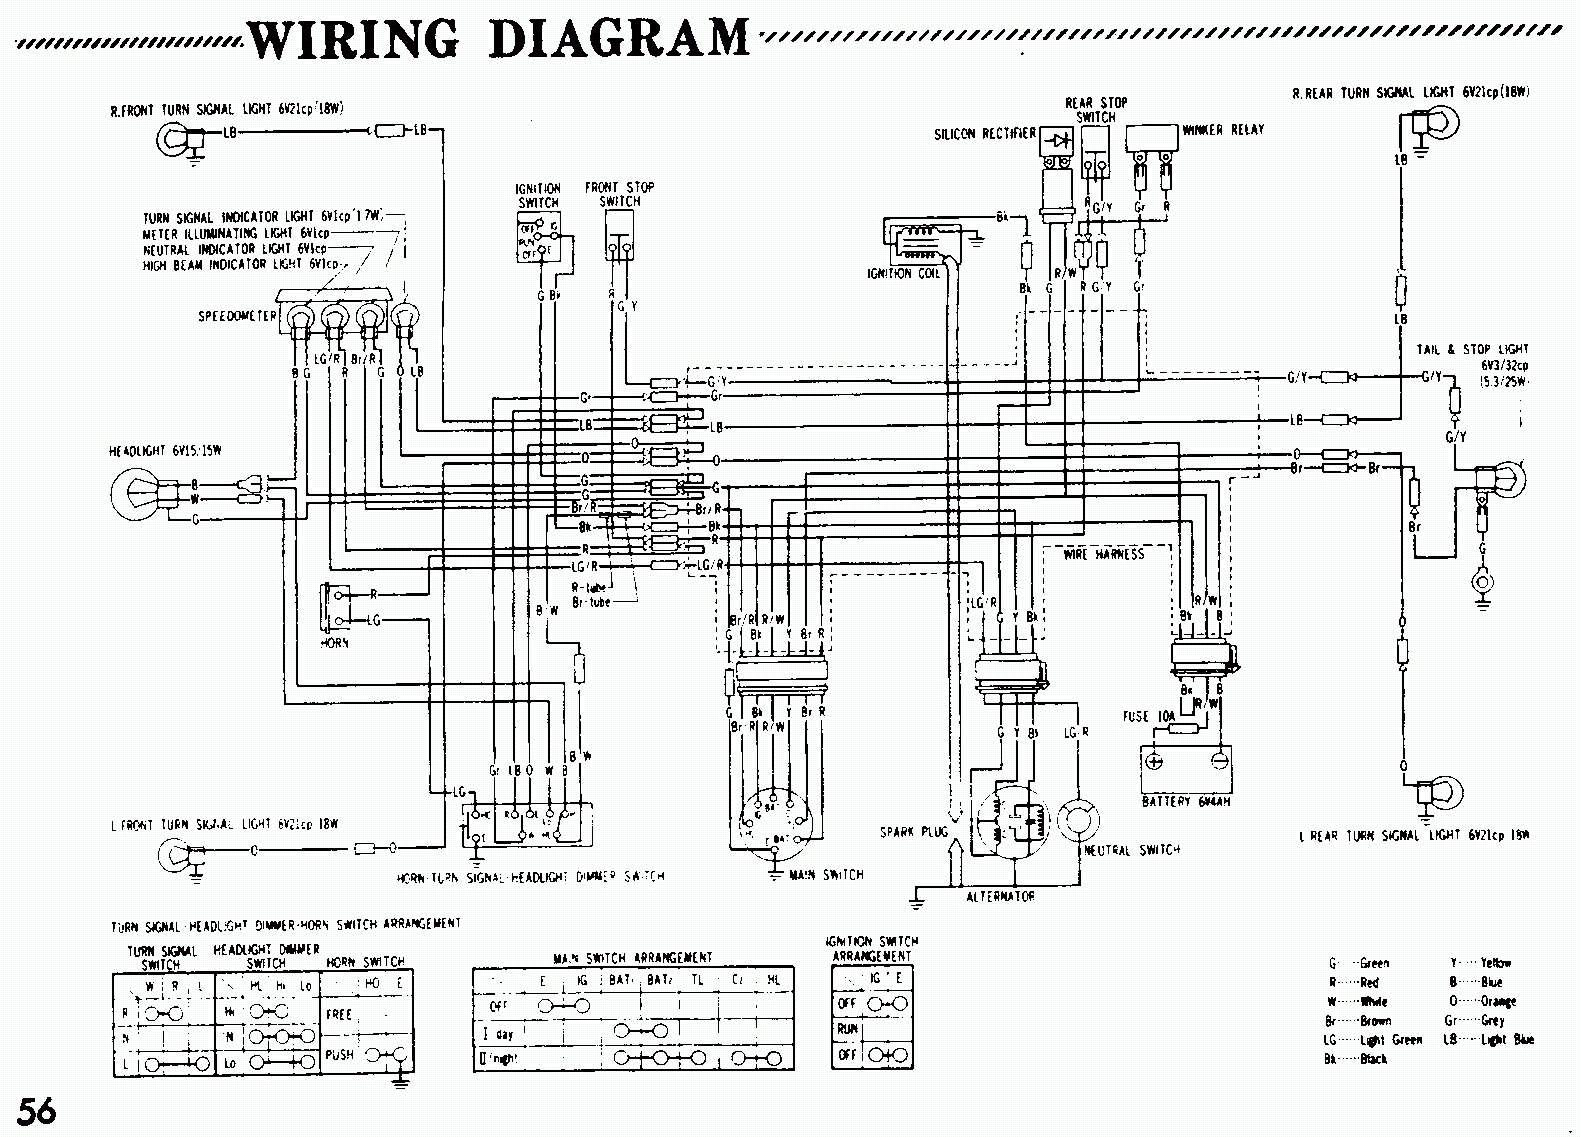 honda ct70 1976 wiring diagram honda xl70 wiring diagram honda cb750 wiring diagram \u2022 free wiring 1978 honda cb125s wiring diagrams at panicattacktreatment.co